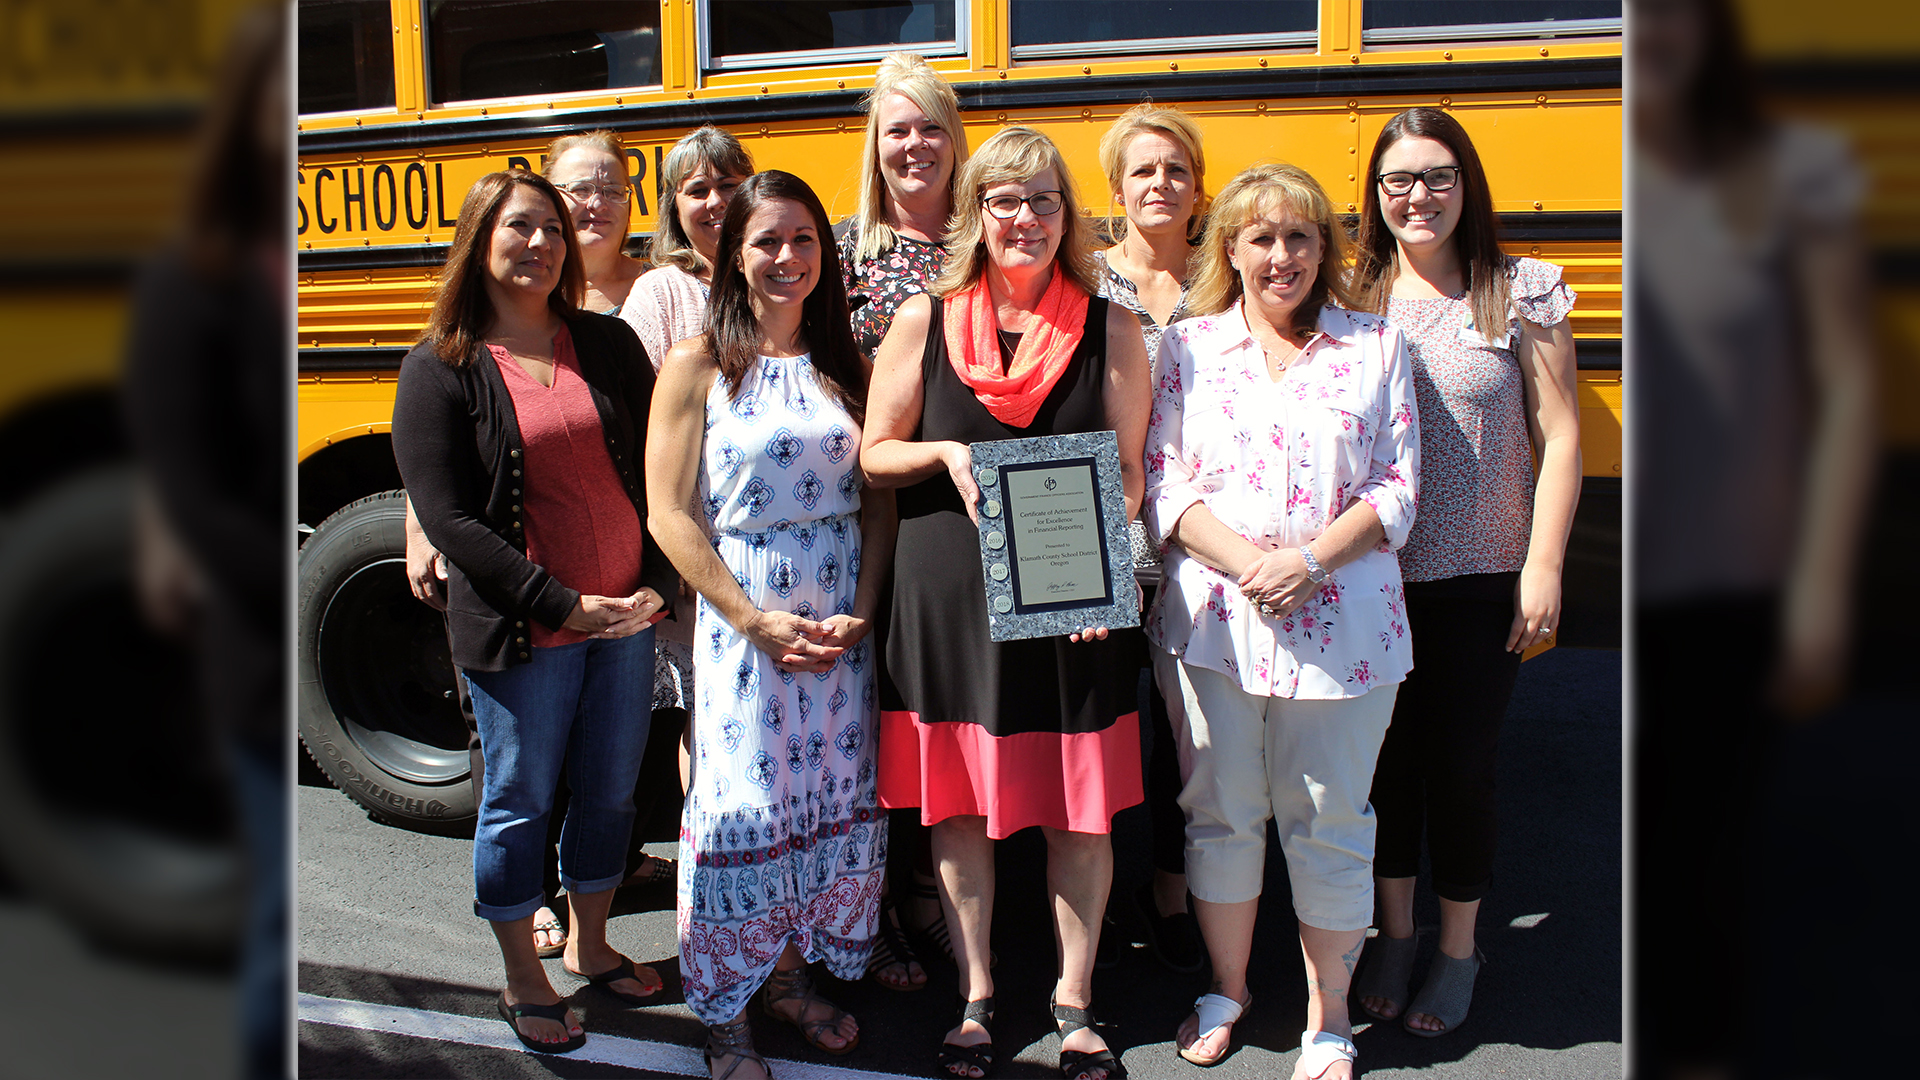 Members of KCSD's business services office whose work earned the department its fifth Certificate of Achievement for Excellence in Financial Reporting from the Government Finance Officers Association of the U.S. and Canada pose for a photo. Pictured are back row, from left: Connie Lakey, Dena Hadwick, Nancy Drake, Lana Loney, Annalise Milwrick. Front row, from left: Rachel Murray, Mindy Markee, Renée Ferguson, director of business services; and Denise Reid. Not pictured is Tammy Cosand.